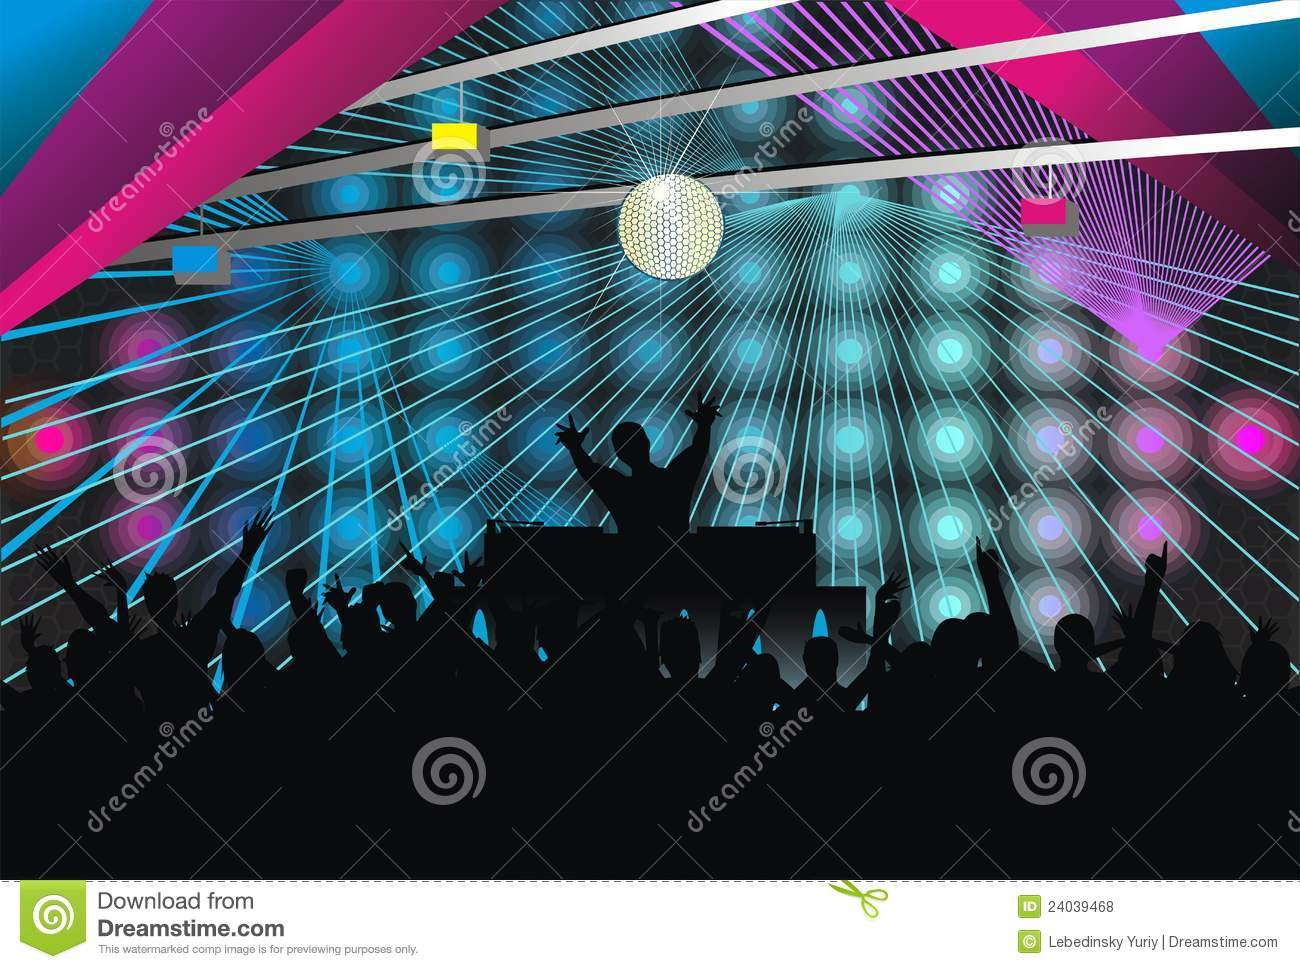 Silhouette Dance Music Abstract Background: Abstract; Art; Background; Musicj Silhouette Royalty Free